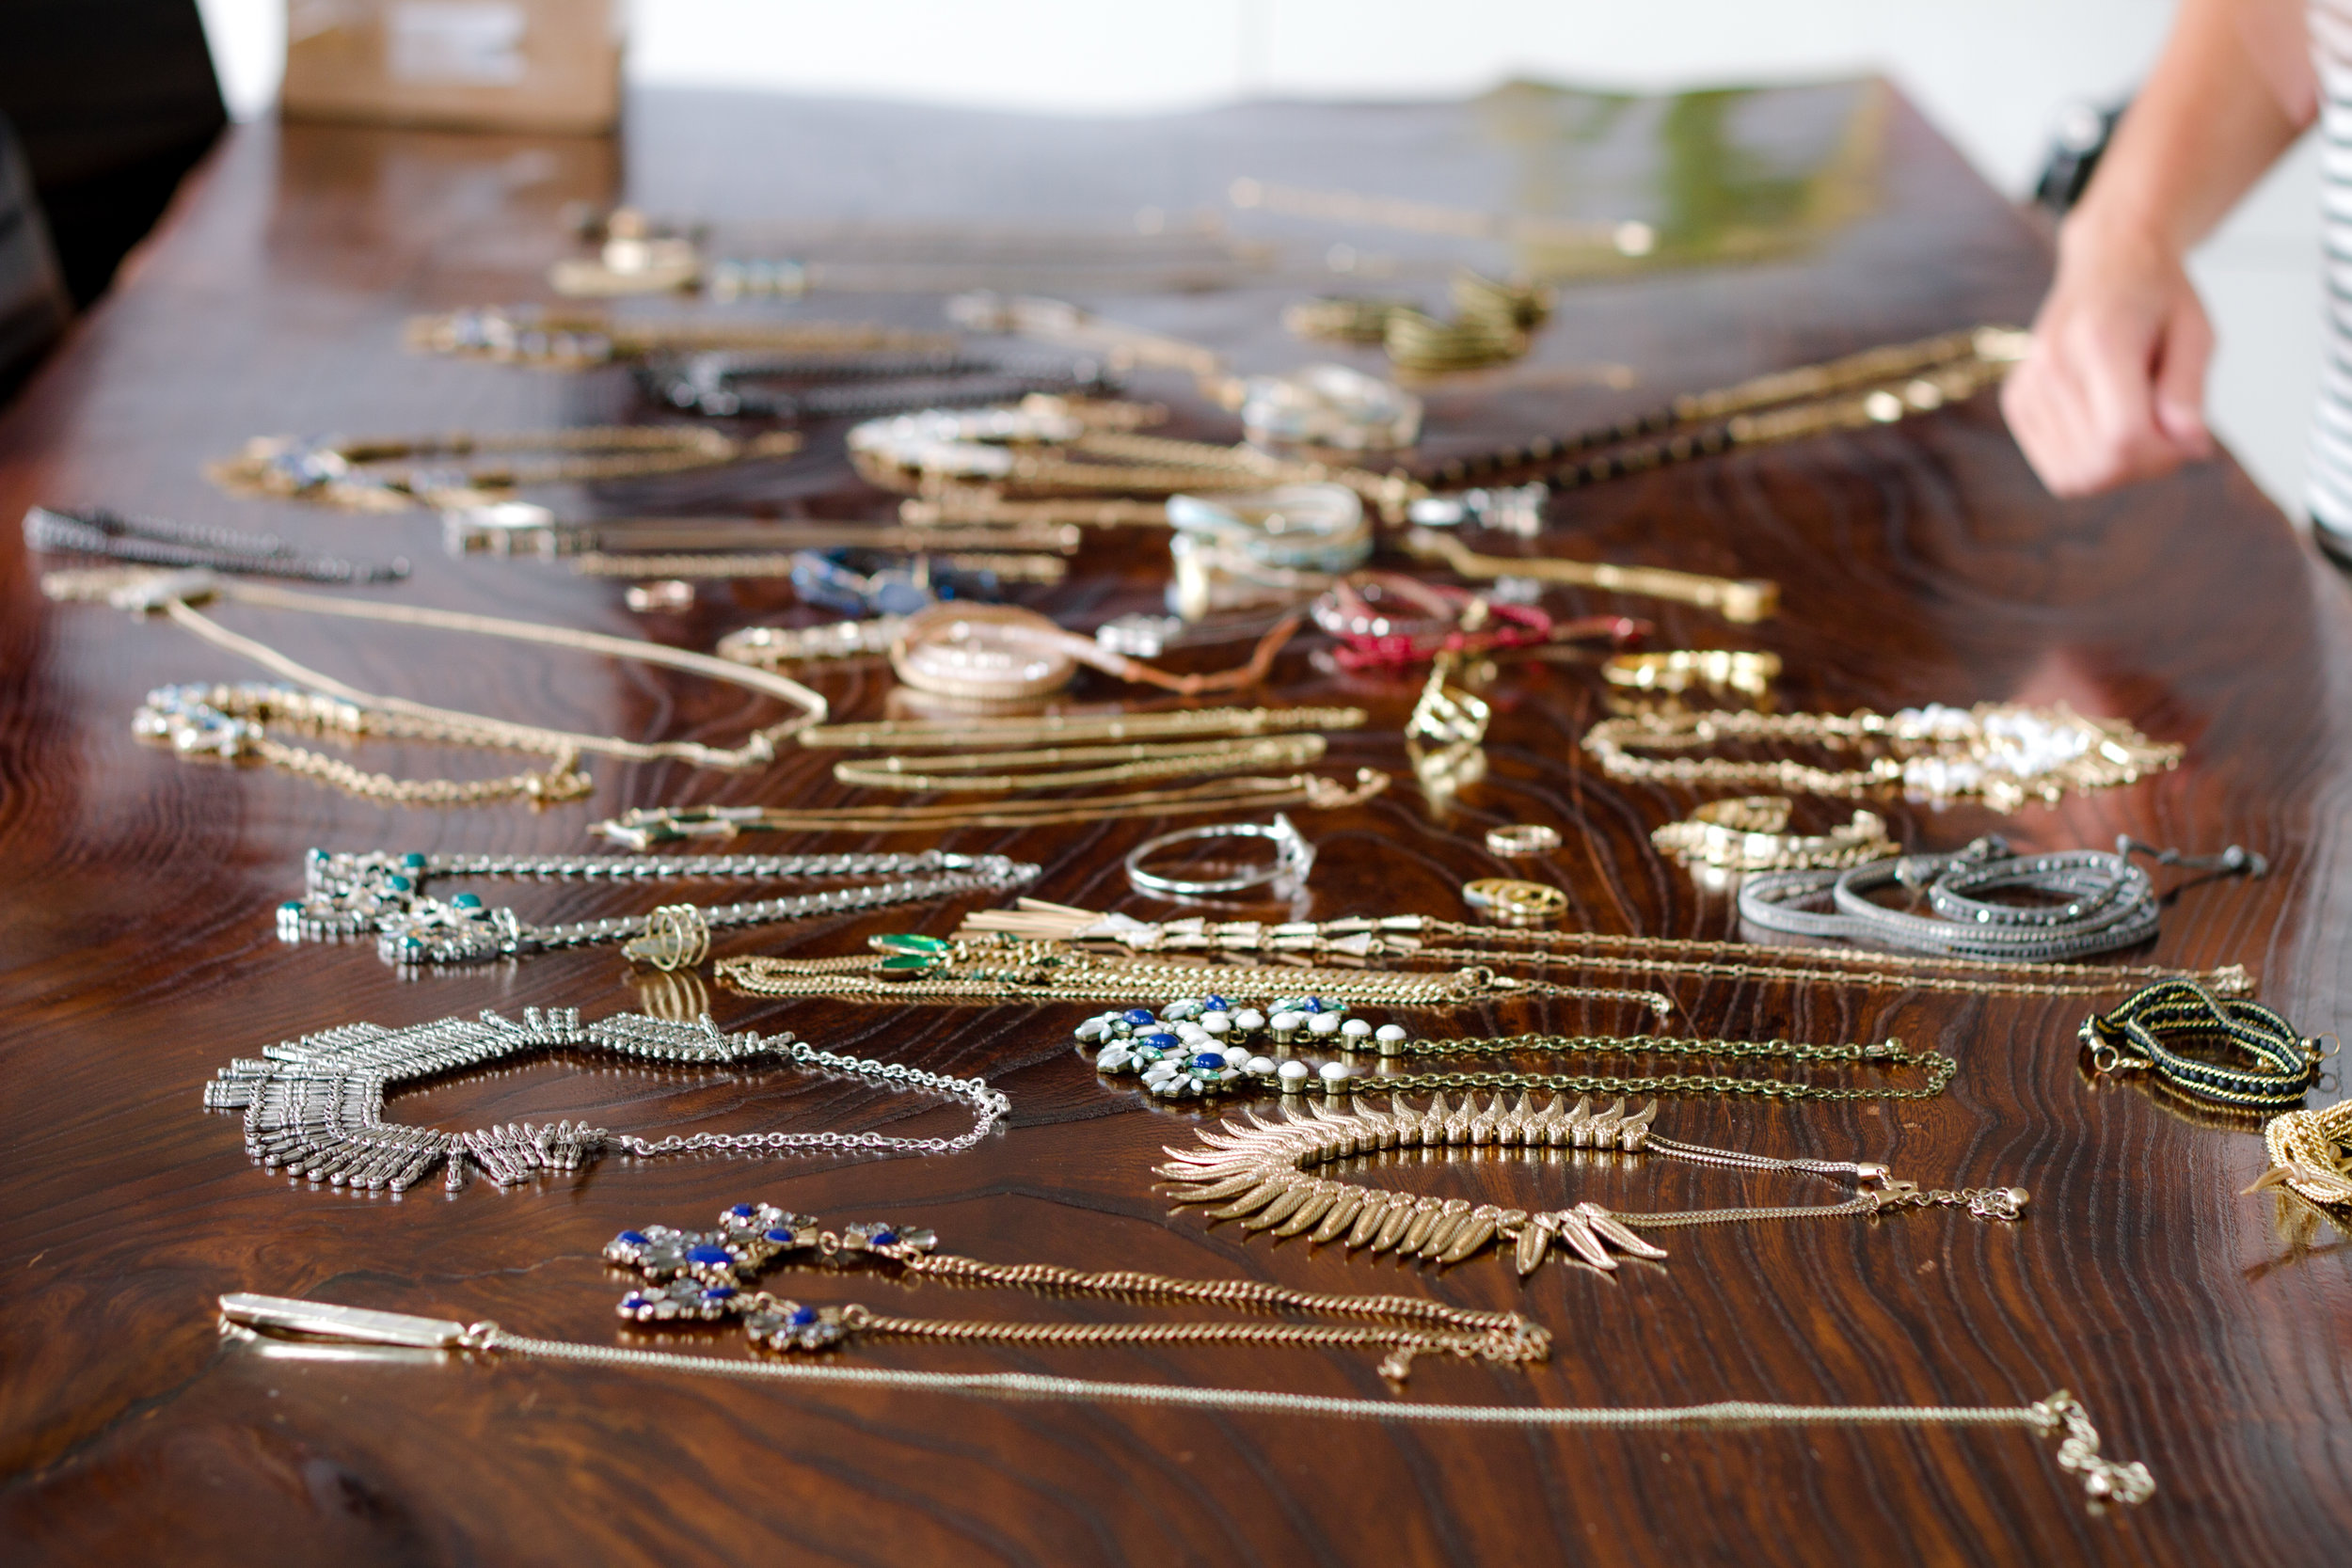 give gifts - Project Glimmer provides teenage girls and women with beautiful gifts in celebration of accomplishments and holidays! All gifts come with great intention from the community and our number one rule is that no gift can disappoint.We accept gifts year-round including jewelry, accessories, heat styling tools, beauty products, journals, water bottles, tablets and gift cards.If you'd like a charitable donation tax receipt, please complete this form.Where to send your gifts: Project Glimmer, 2486 Verna Ct, San Leandro, CA 94577